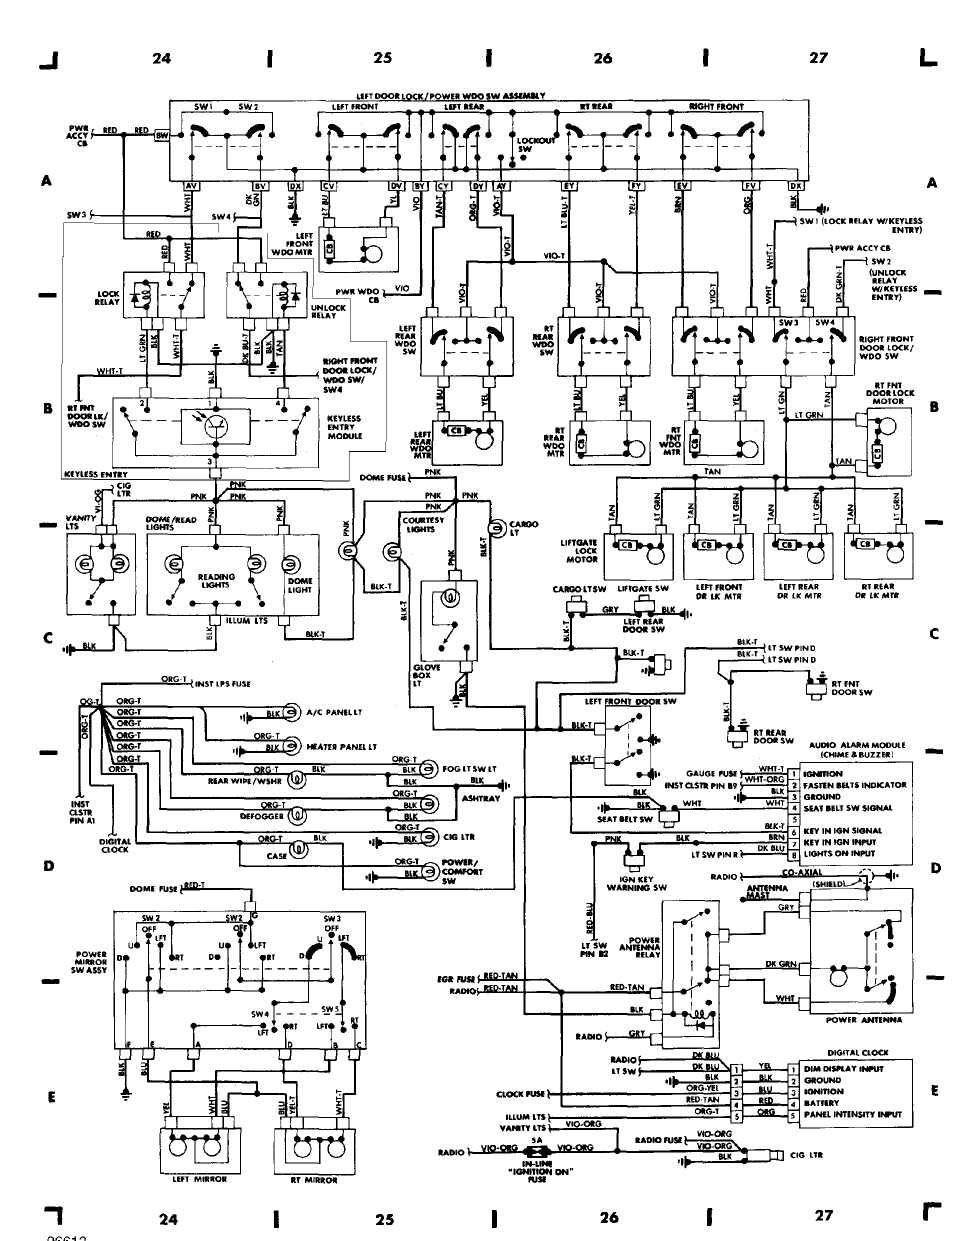 wiring_diagrams_html_61f5e0ad wiring diagrams 1984 1991 jeep cherokee (xj) jeep 1990 jeep wrangler engine wiring harness at aneh.co